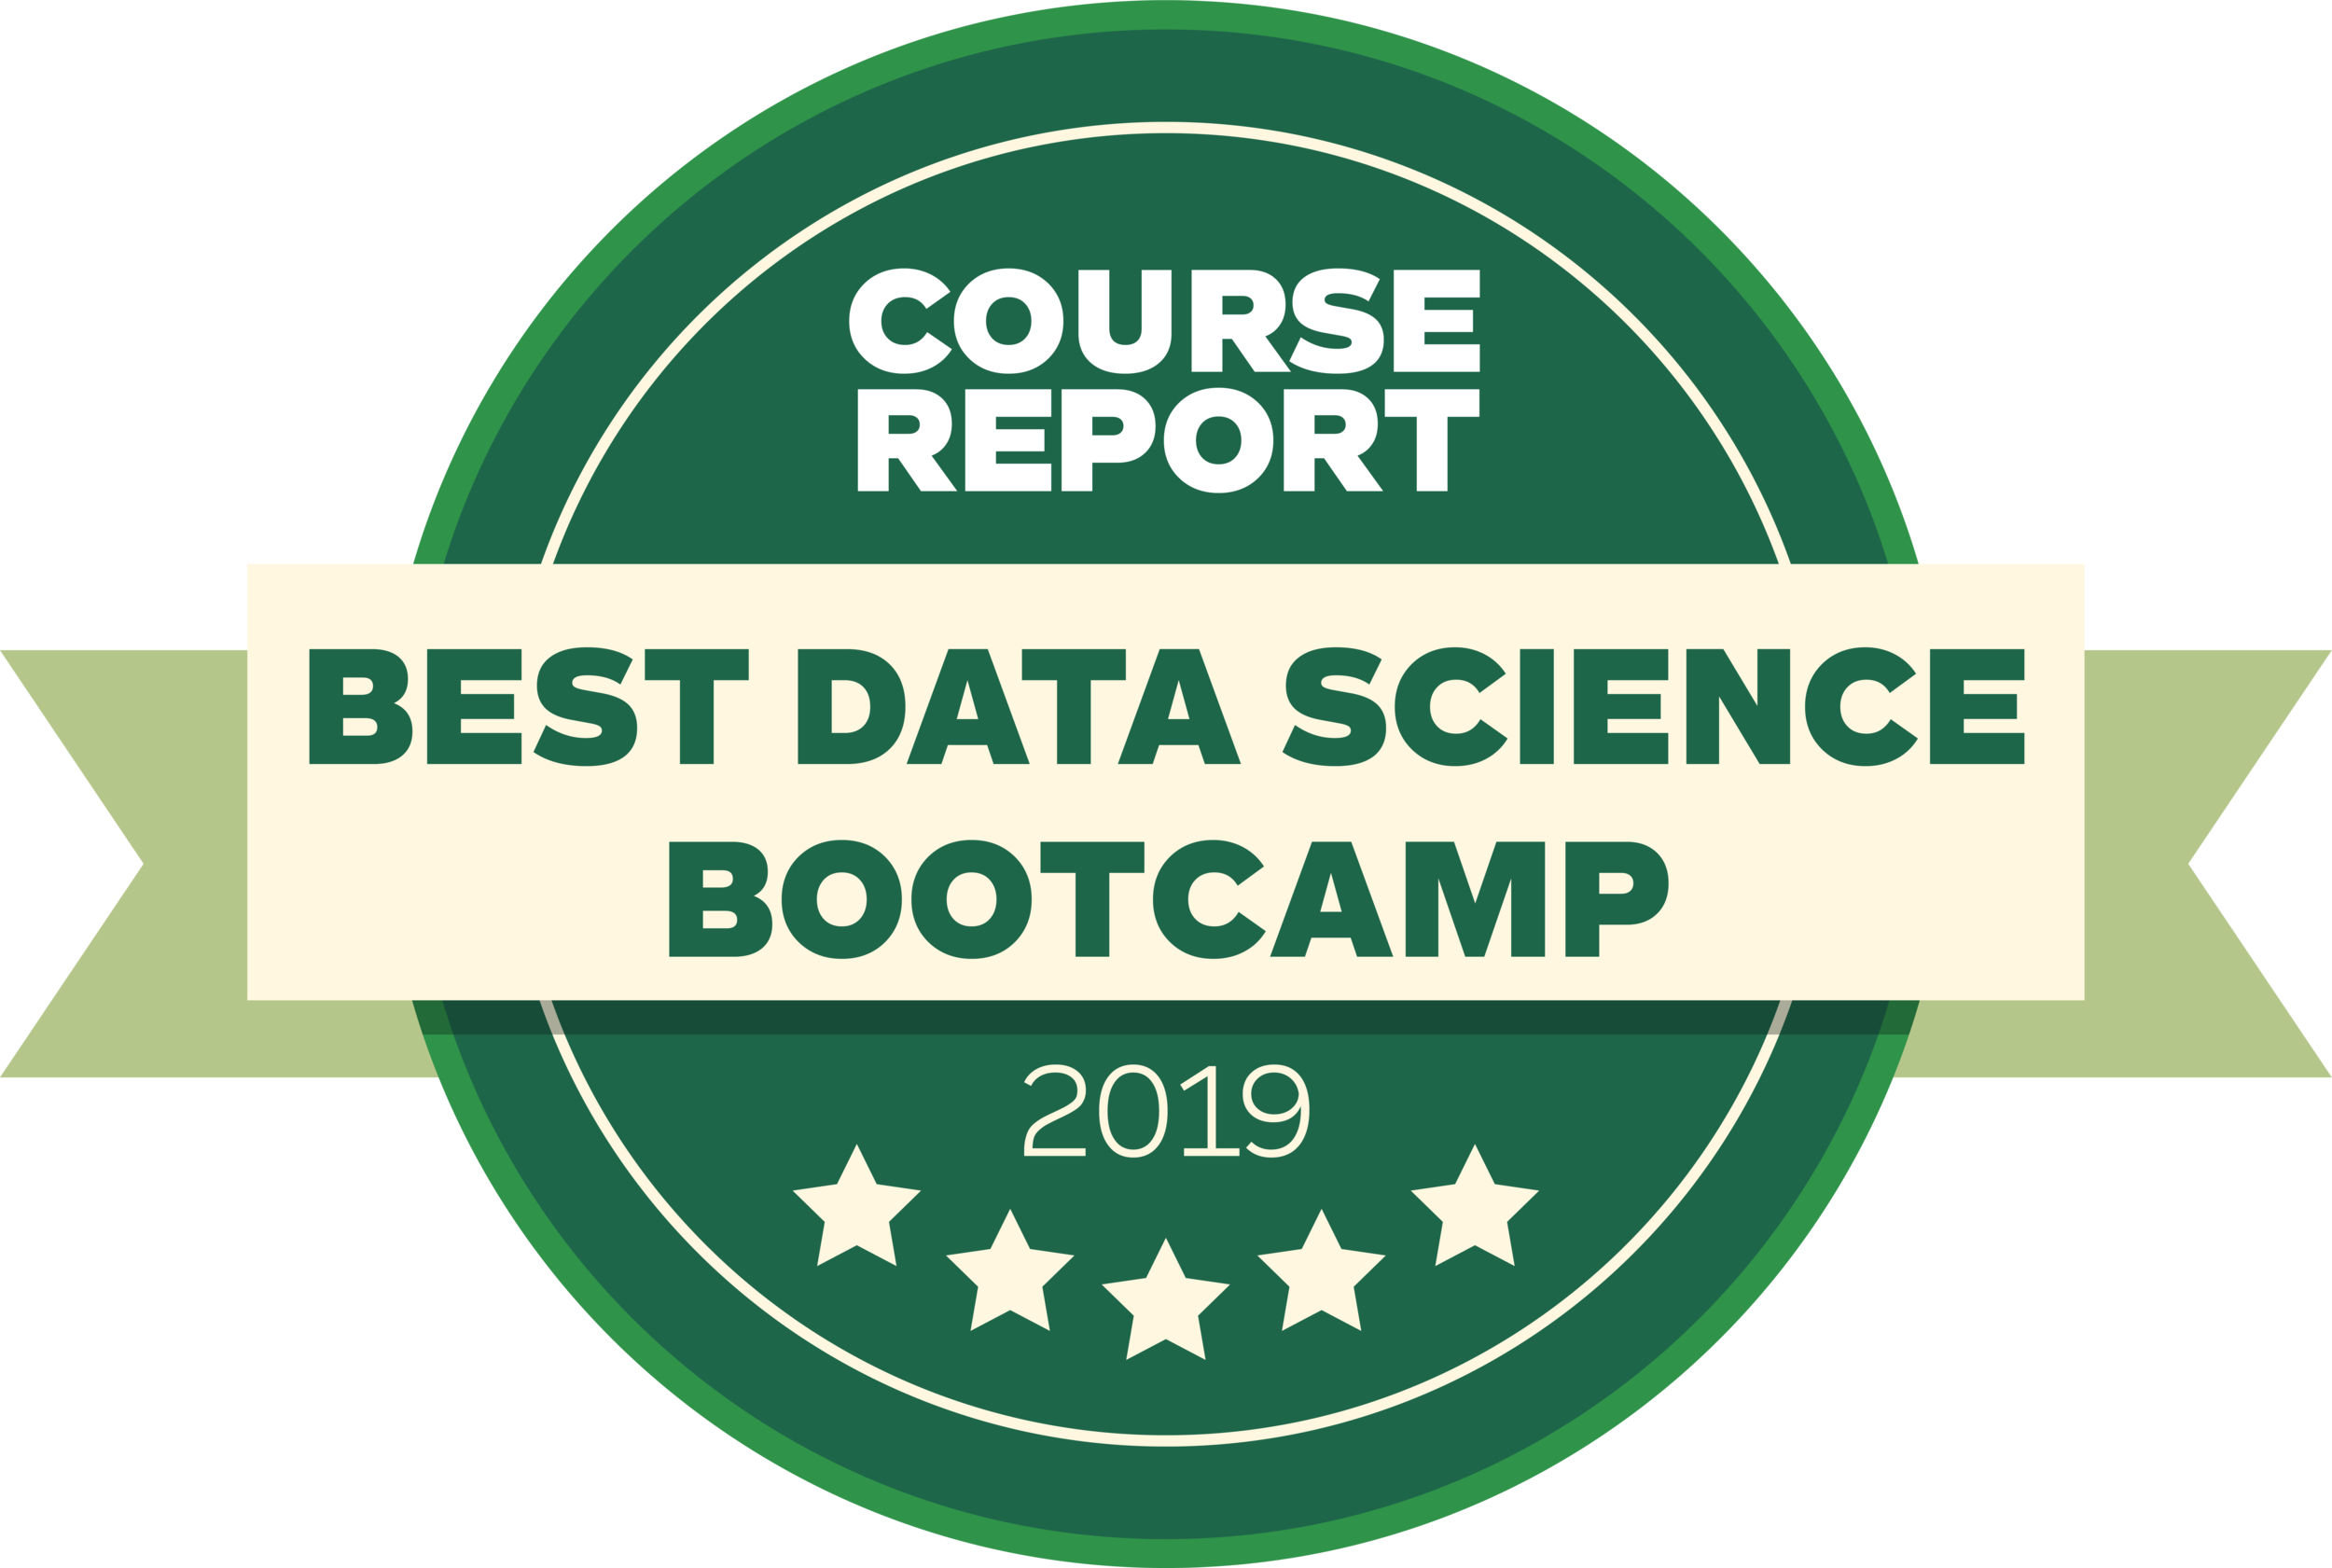 Principal Analytics Prep awarded Best Data Science Bootcamp by Course Report